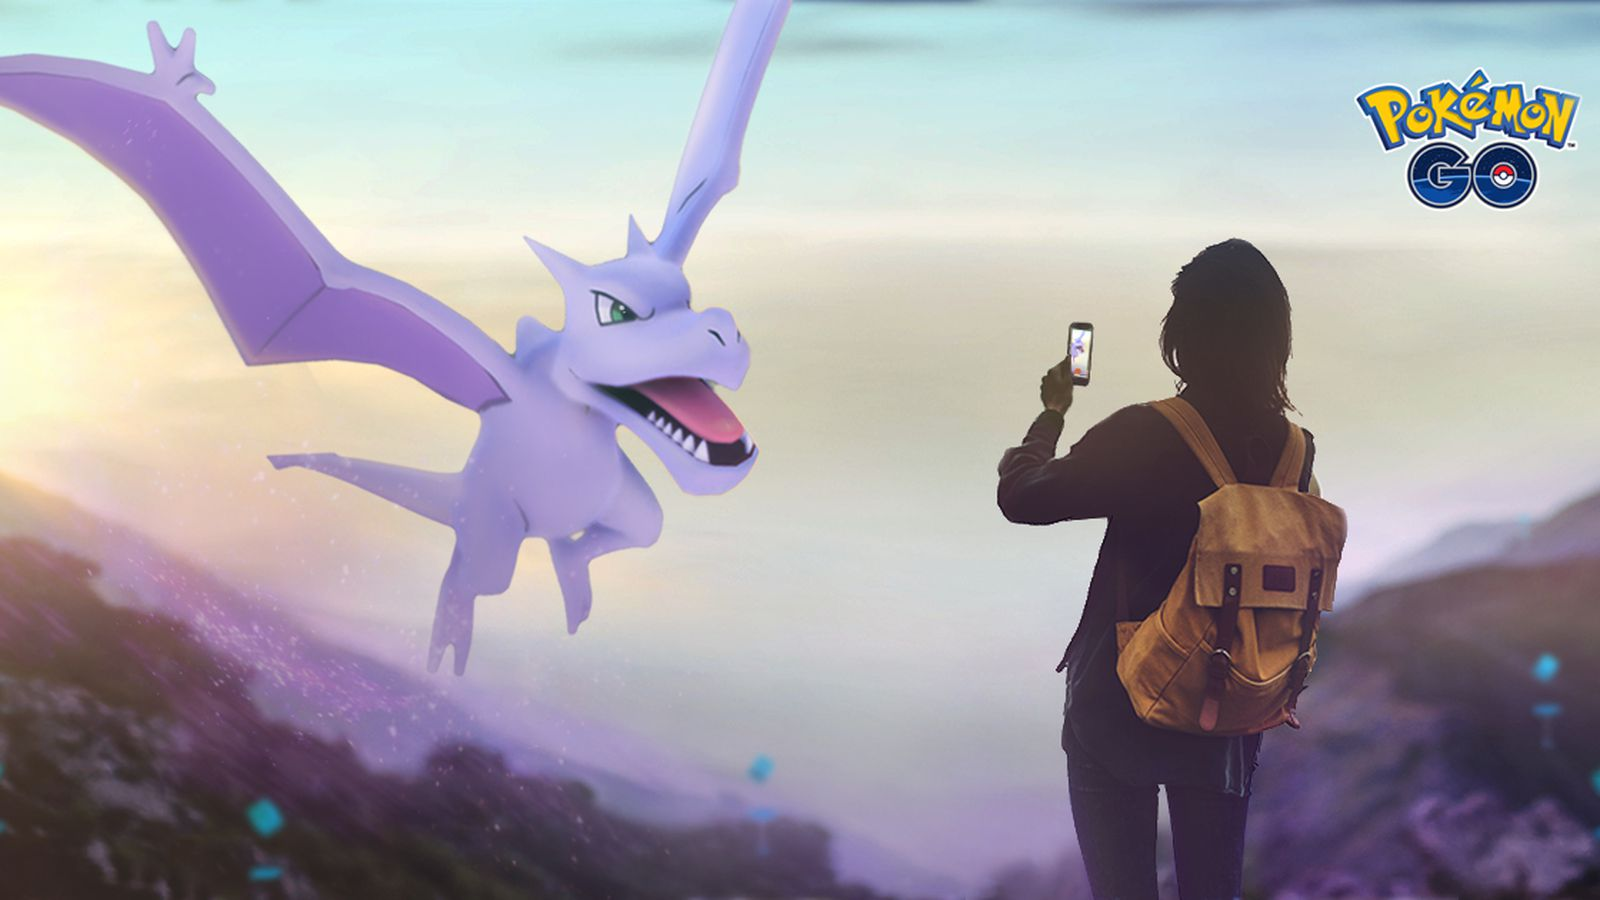 Pokémon Go Fest is happening in your house this weekend, thanks to Twitch